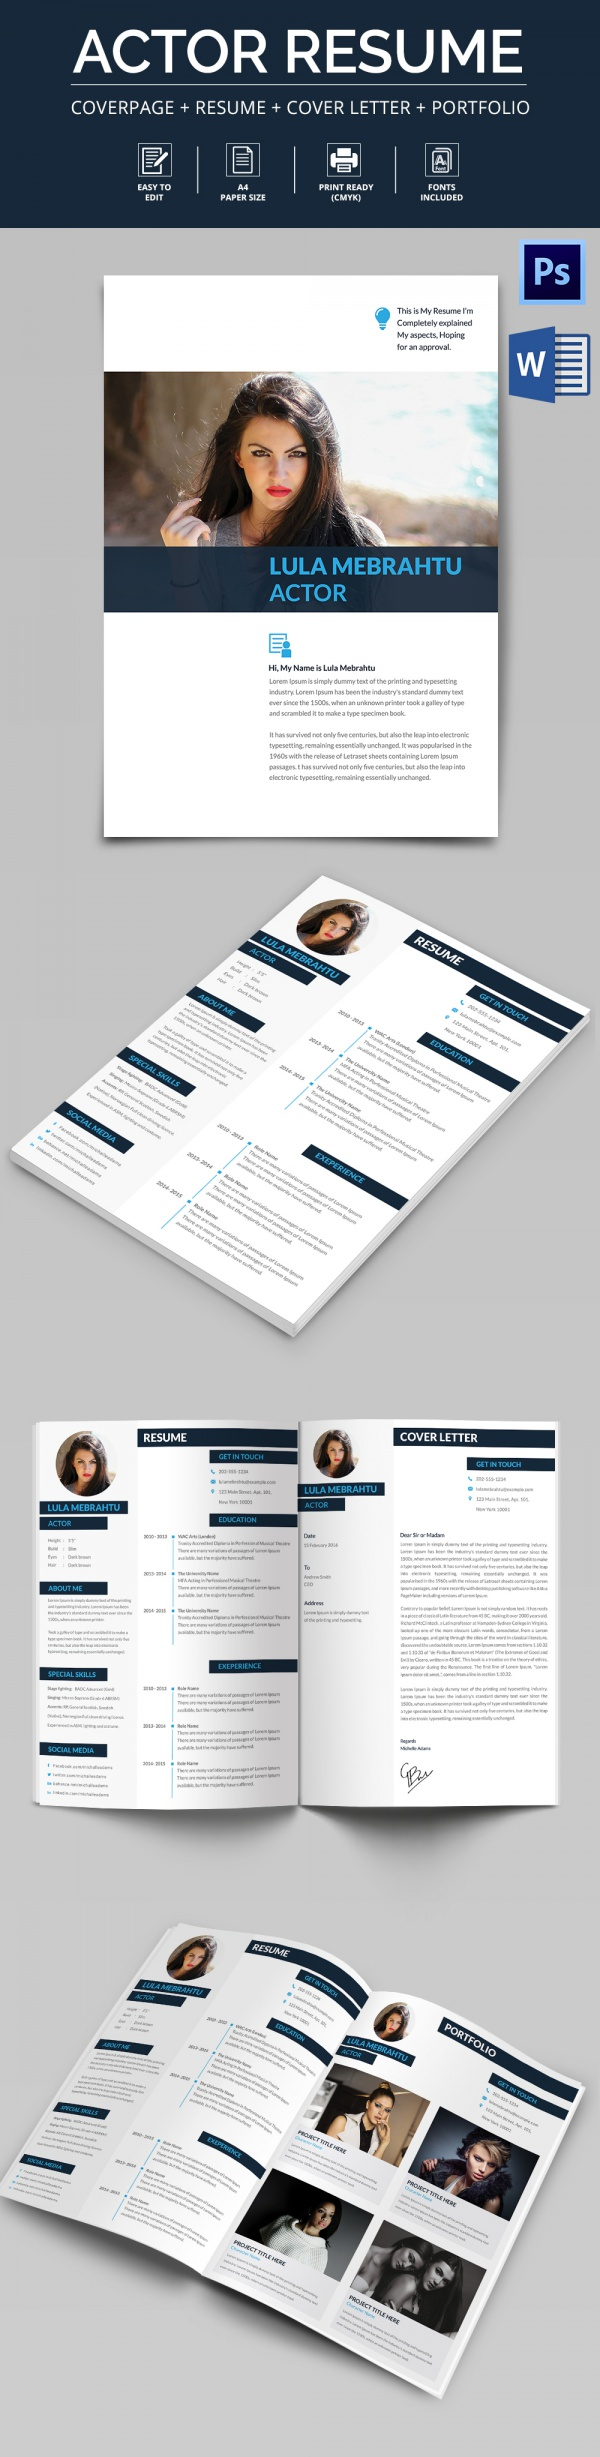 sample acting cv template 7 documents in pdf editable actor resume template